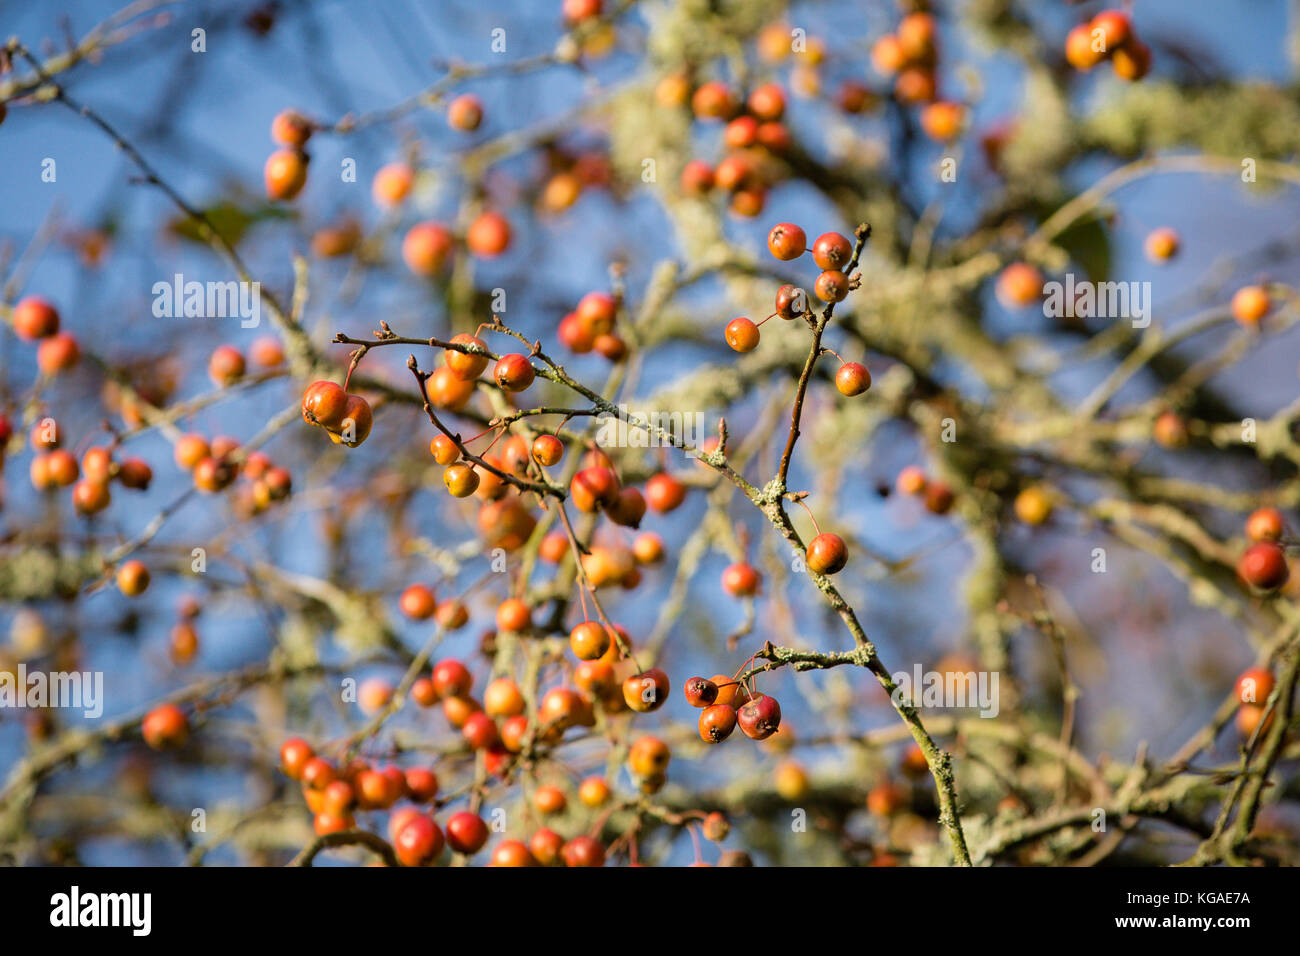 Crab Apple Tree With Bare Branches Still Carrying Fruits Despite